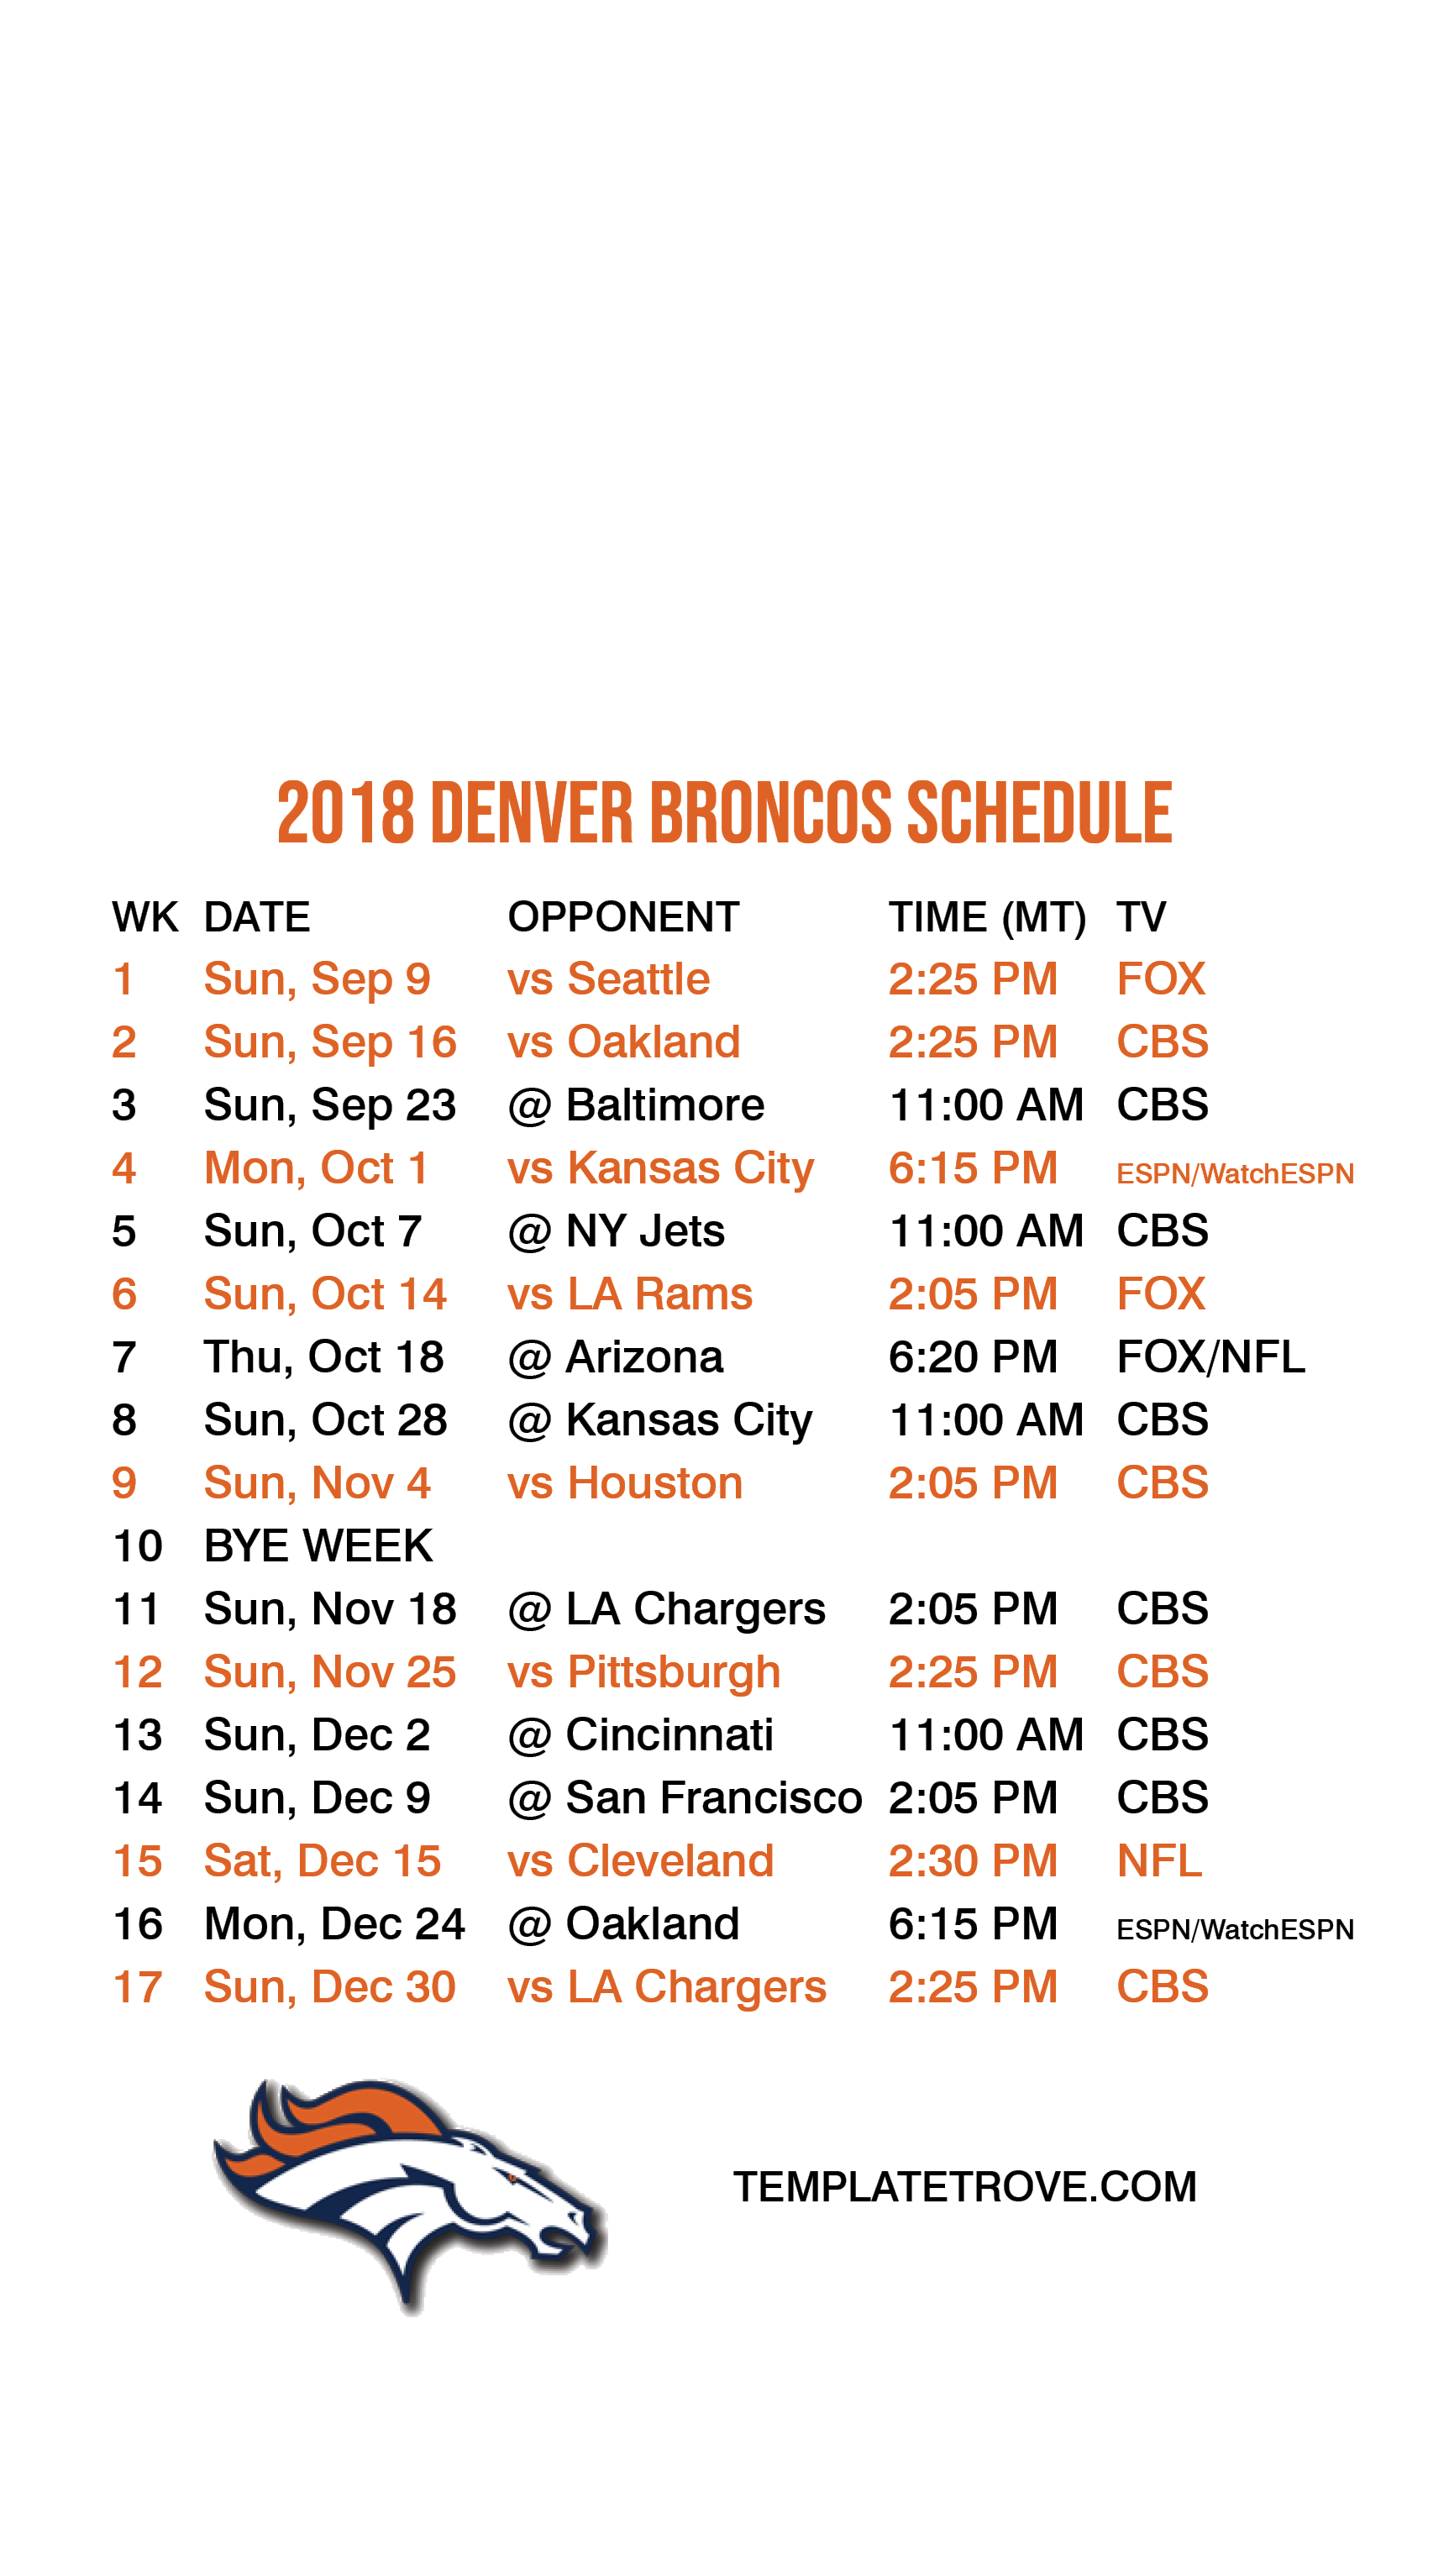 graphic about Denver Broncos Schedule Printable titled denver broncos agenda 2018 19